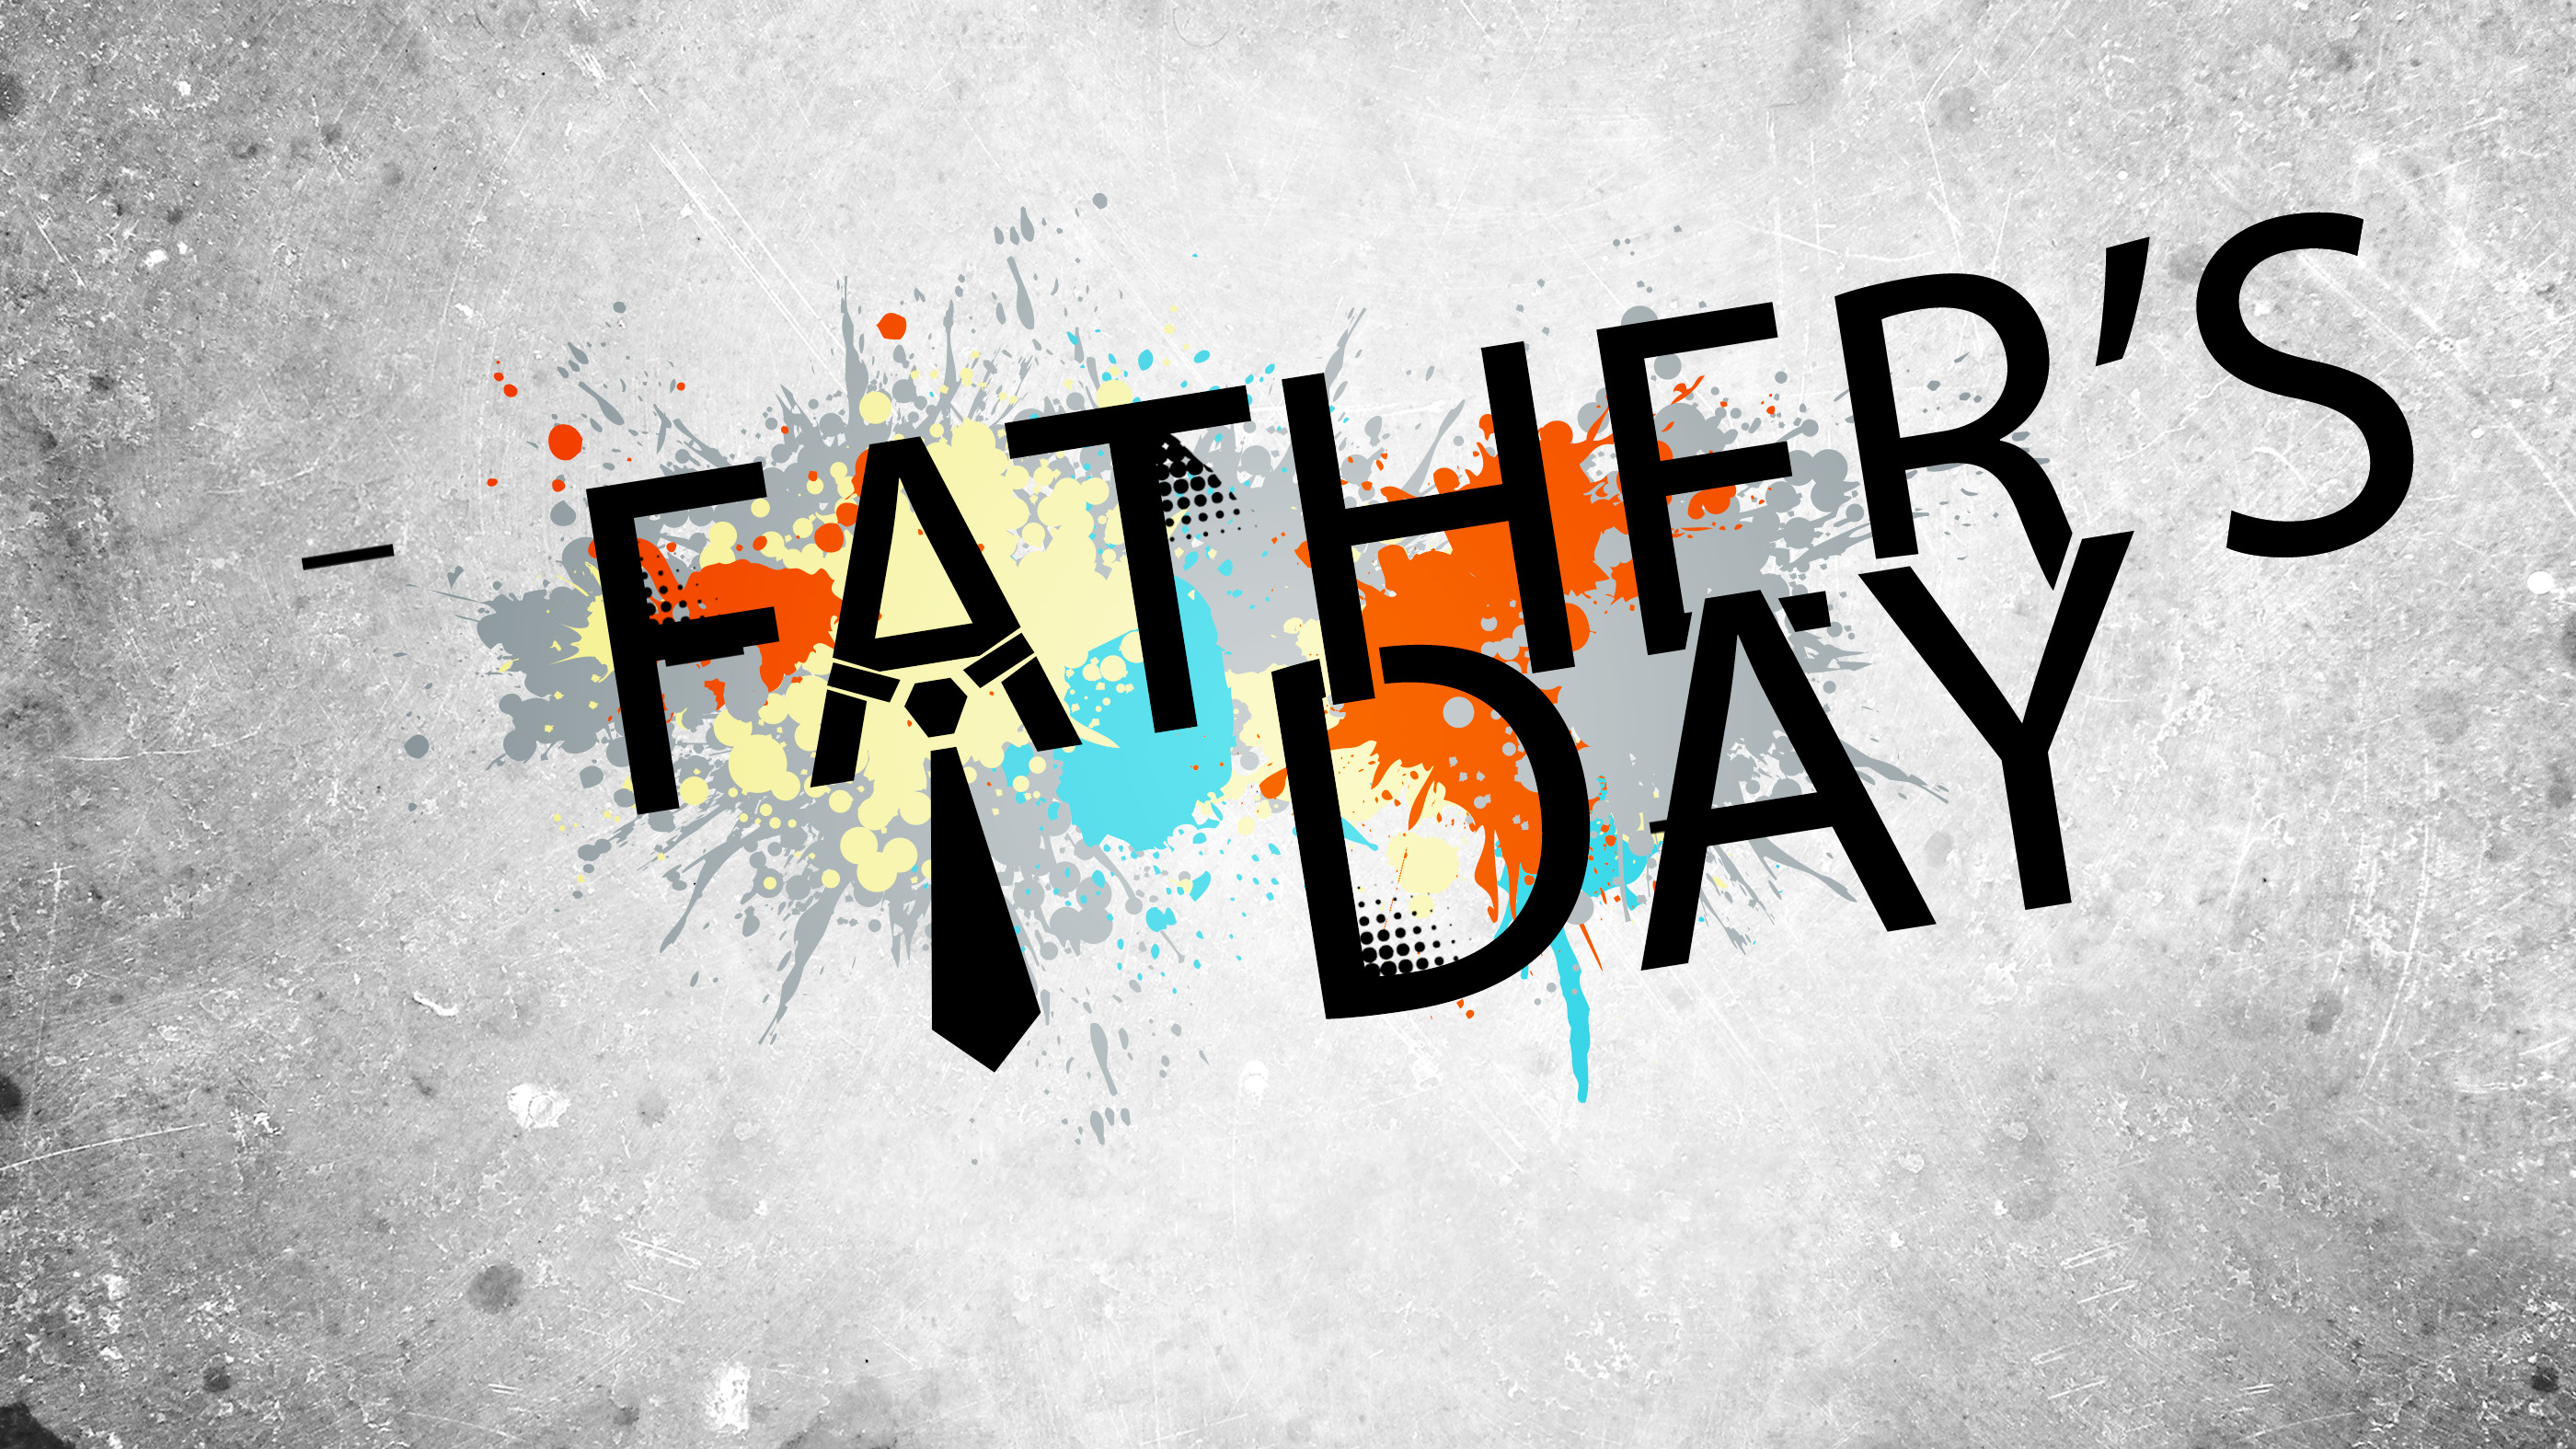 Fathers Day HD Wallpaper 2800x1575